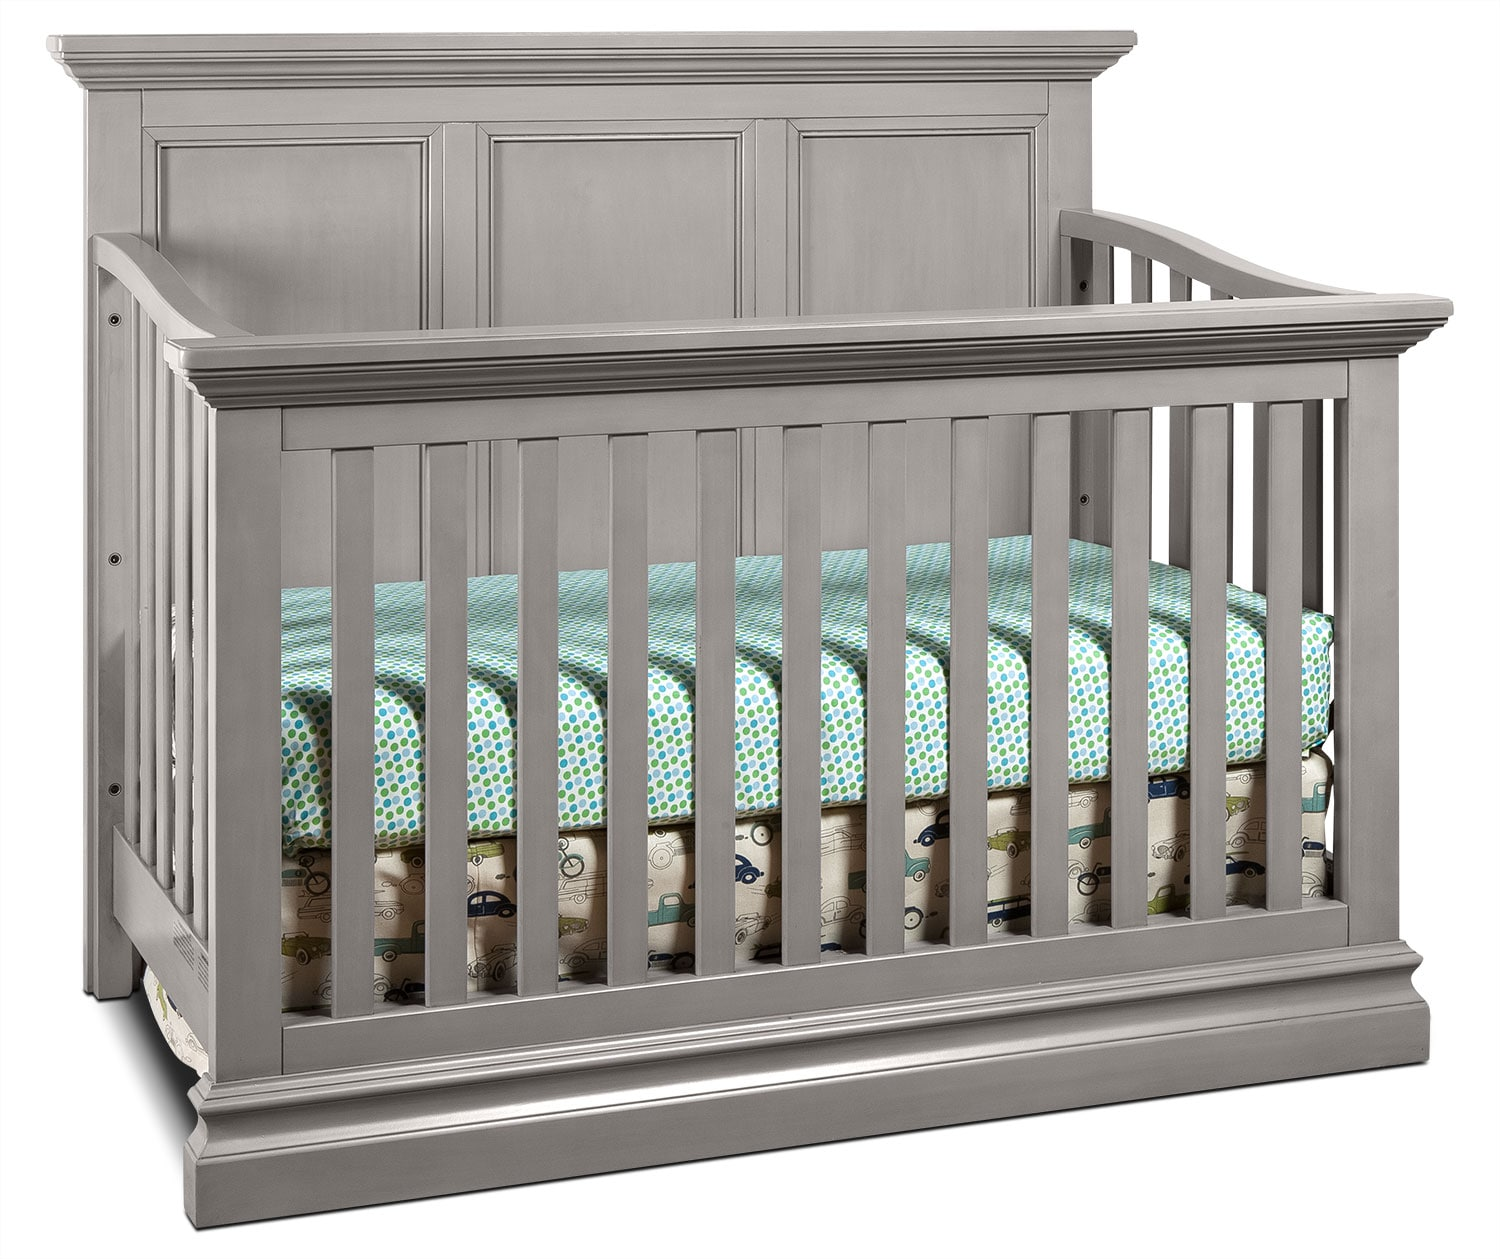 Cameron Convertible Panel Crib - Cloud